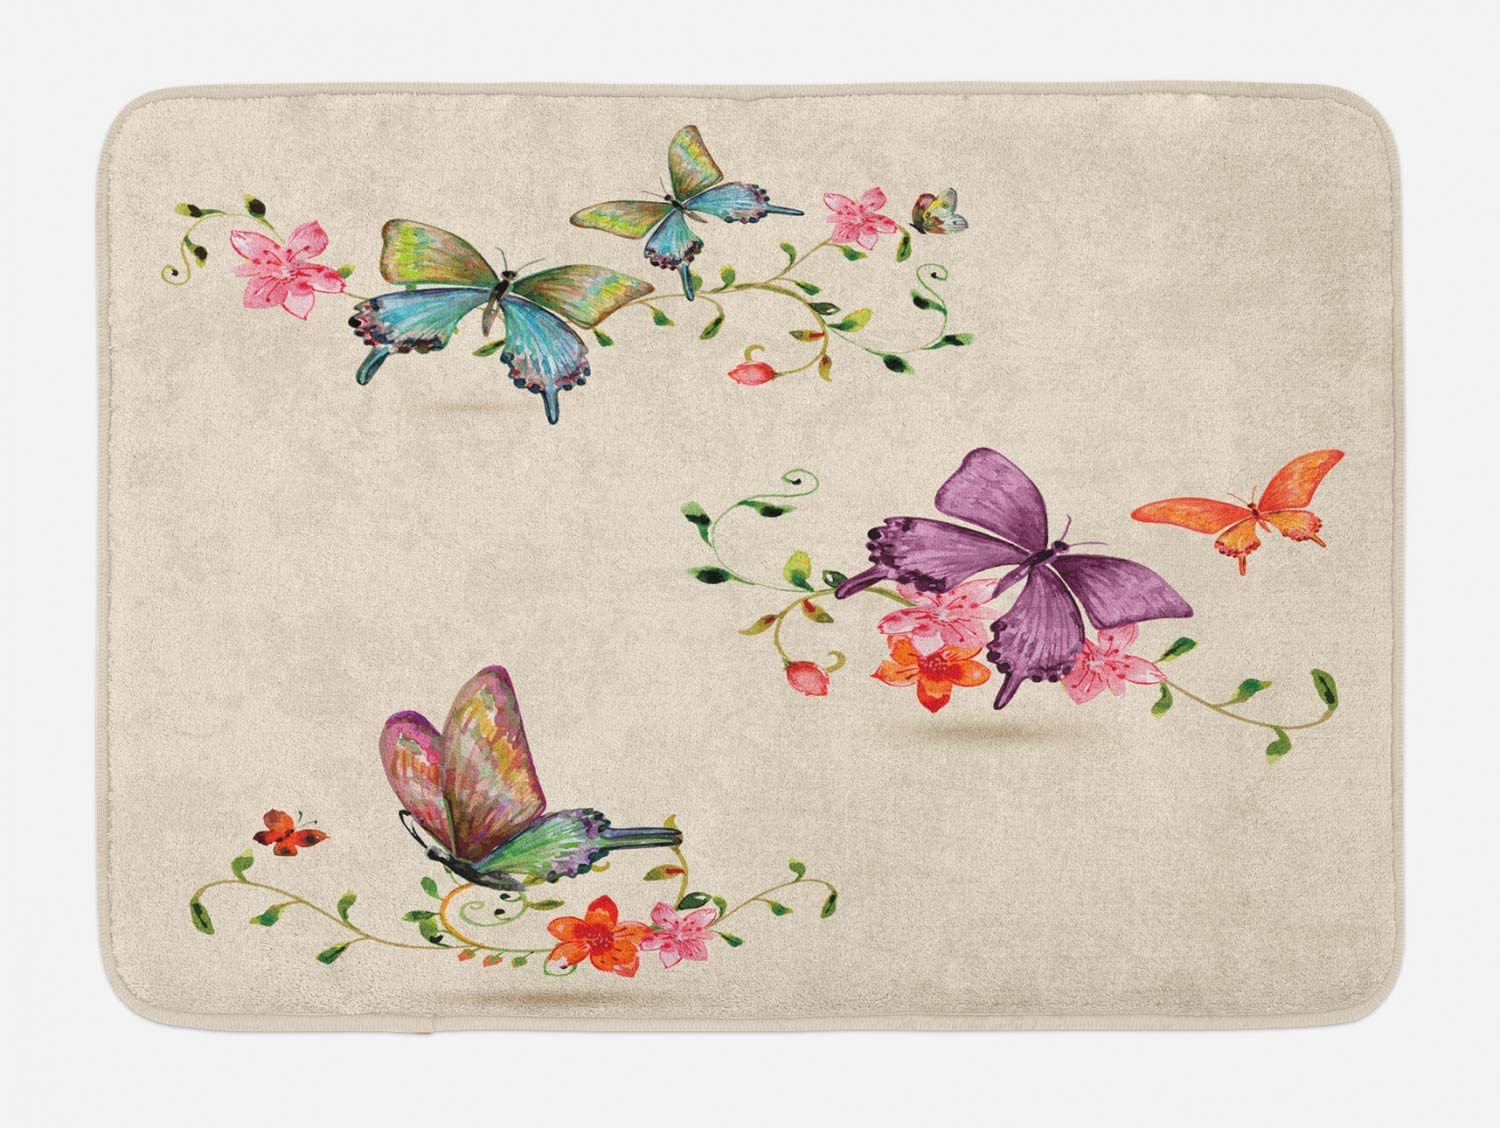 Ambesonne Butterfly Bath Mat, Butterfly Pattern on Vintage Style Background Wings Moth Transformation, Plush Bathroom Decor Mat with Non Slip Backing, 29.5